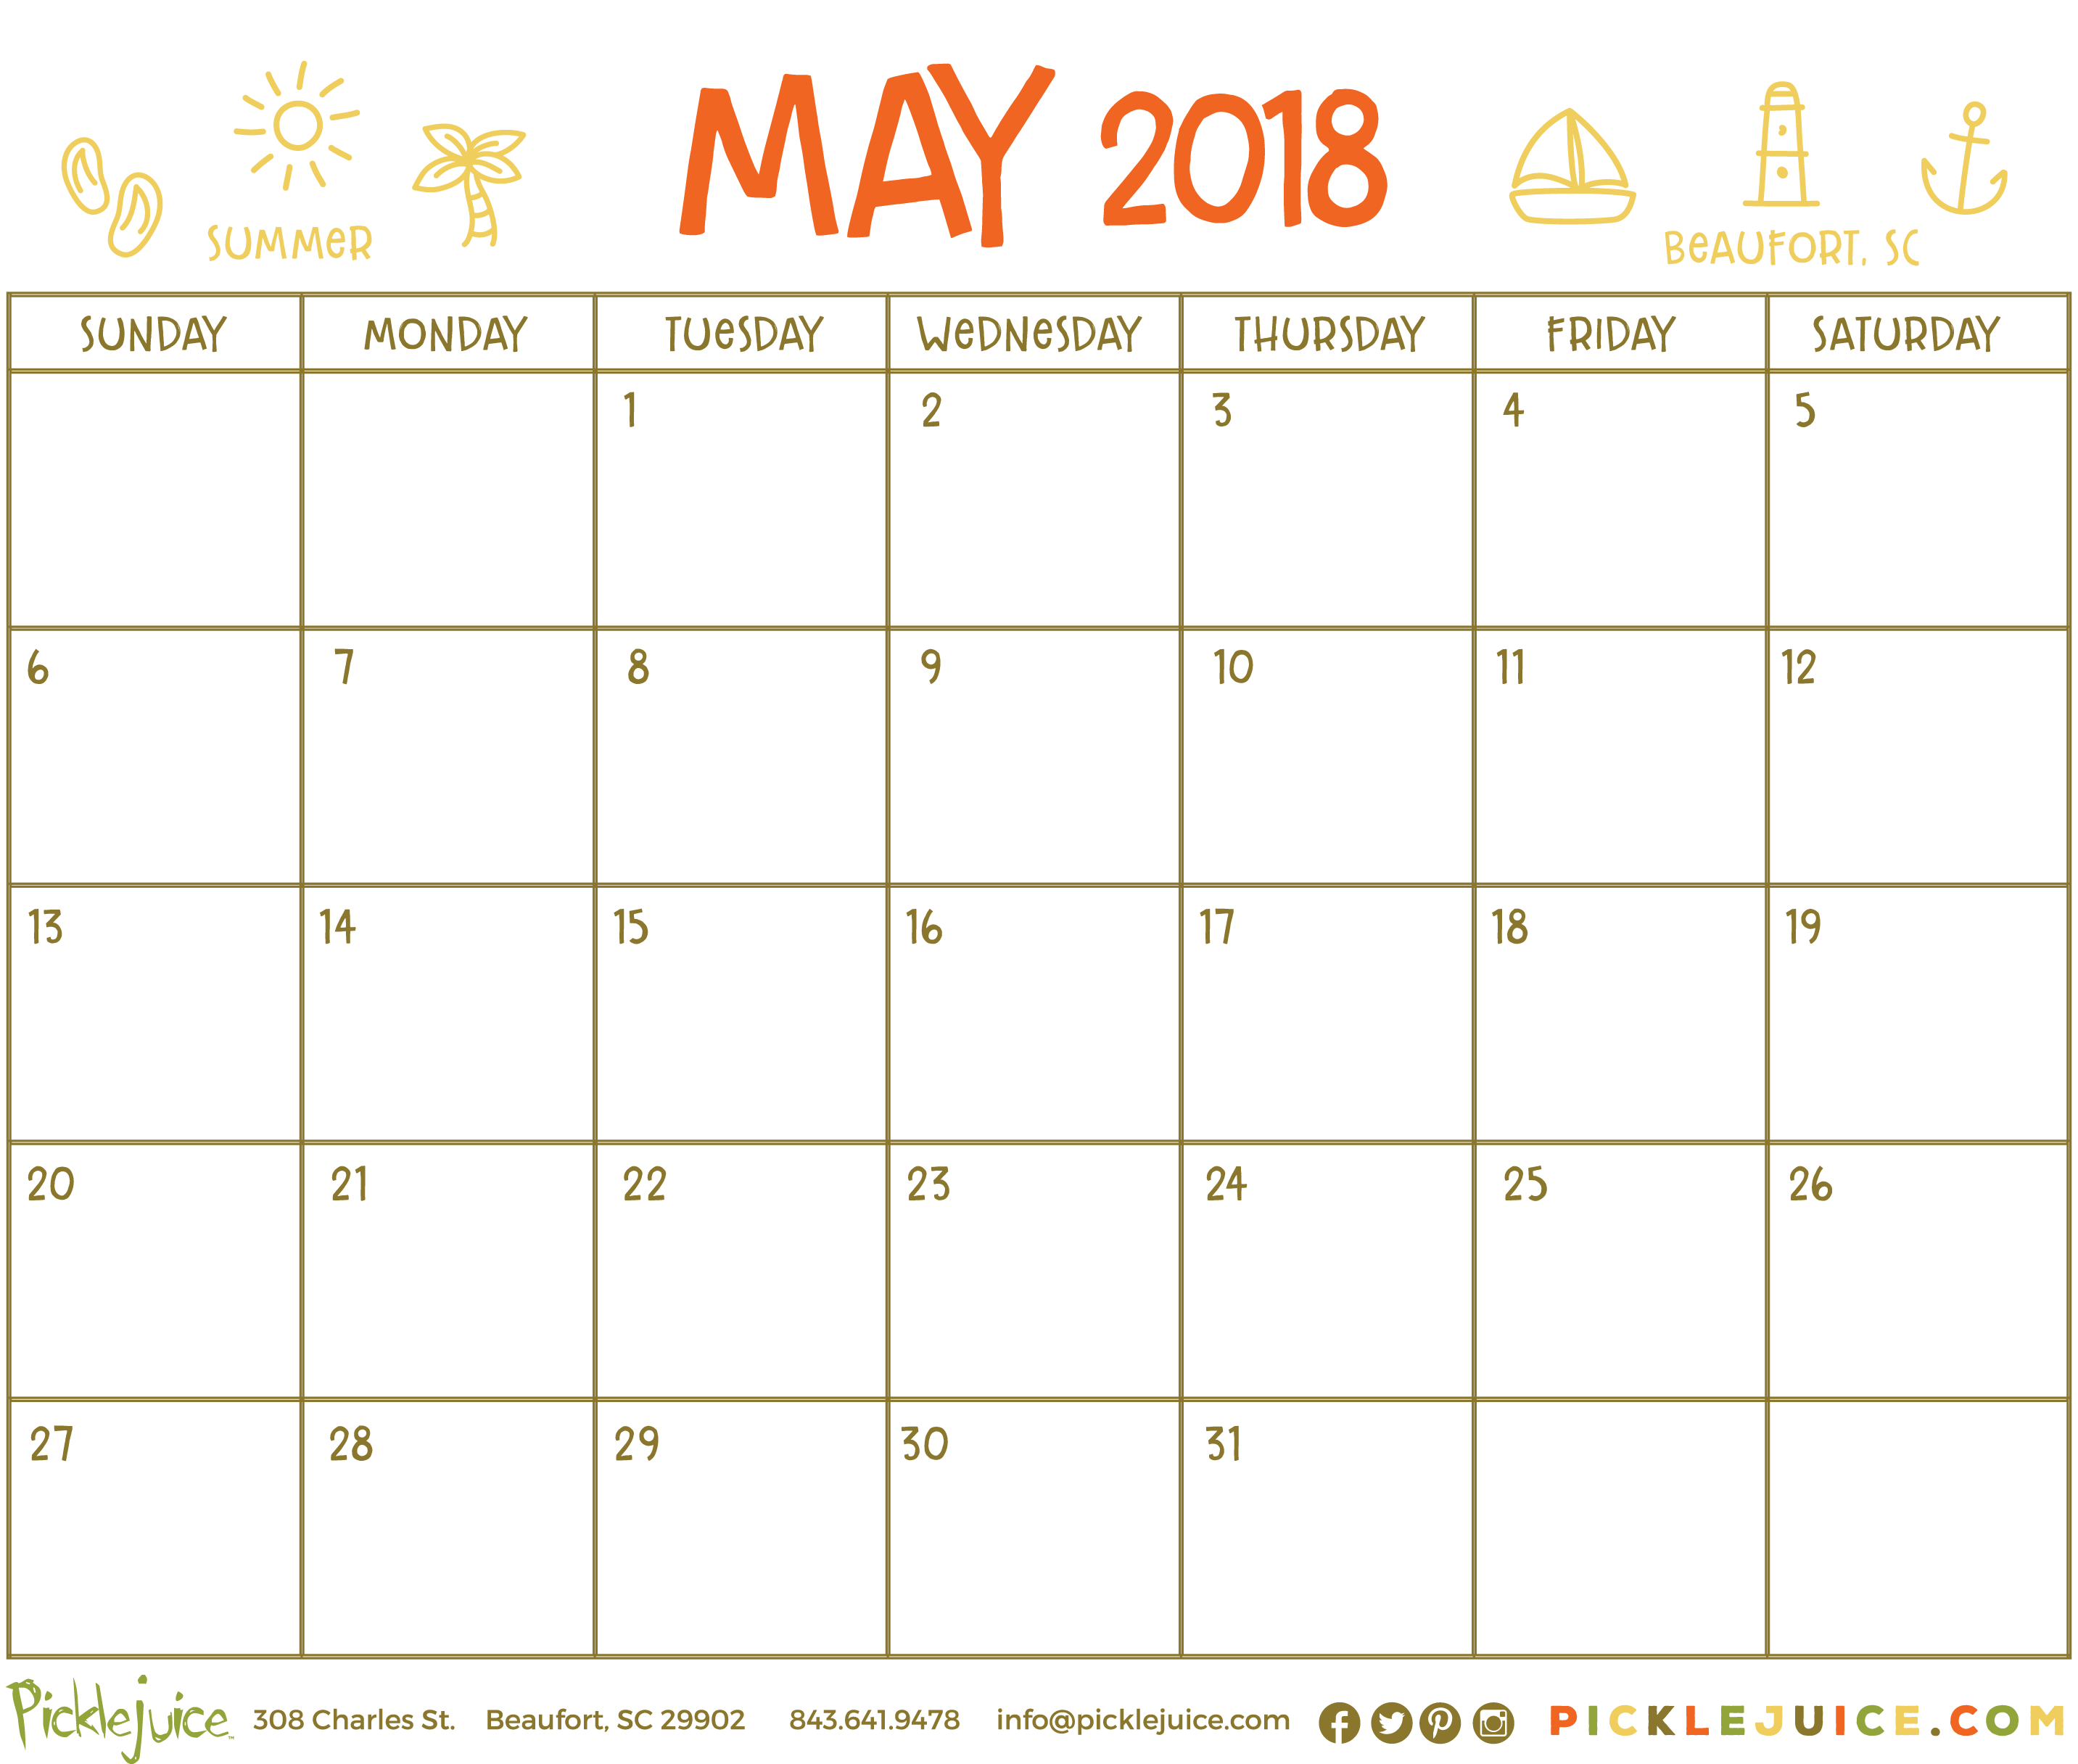 Beaufort Summer 2018 Calendar - May 2018